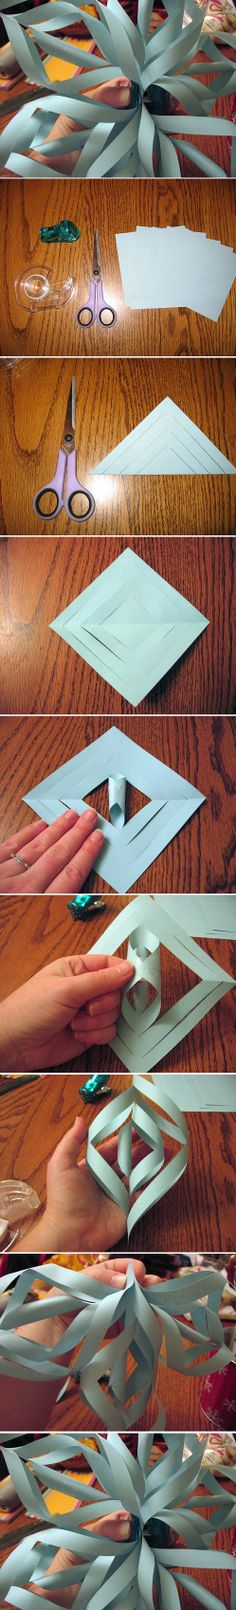 DIY Ideas: 3D Paper Snowflake All Things Christmas, Christmas Holidays, Christmas Decorations, Xmas, Frozen Baby Shower, Frozen Tea Party, 3d Paper Snowflakes, Christmas Origami, Winter Crafts For Kids